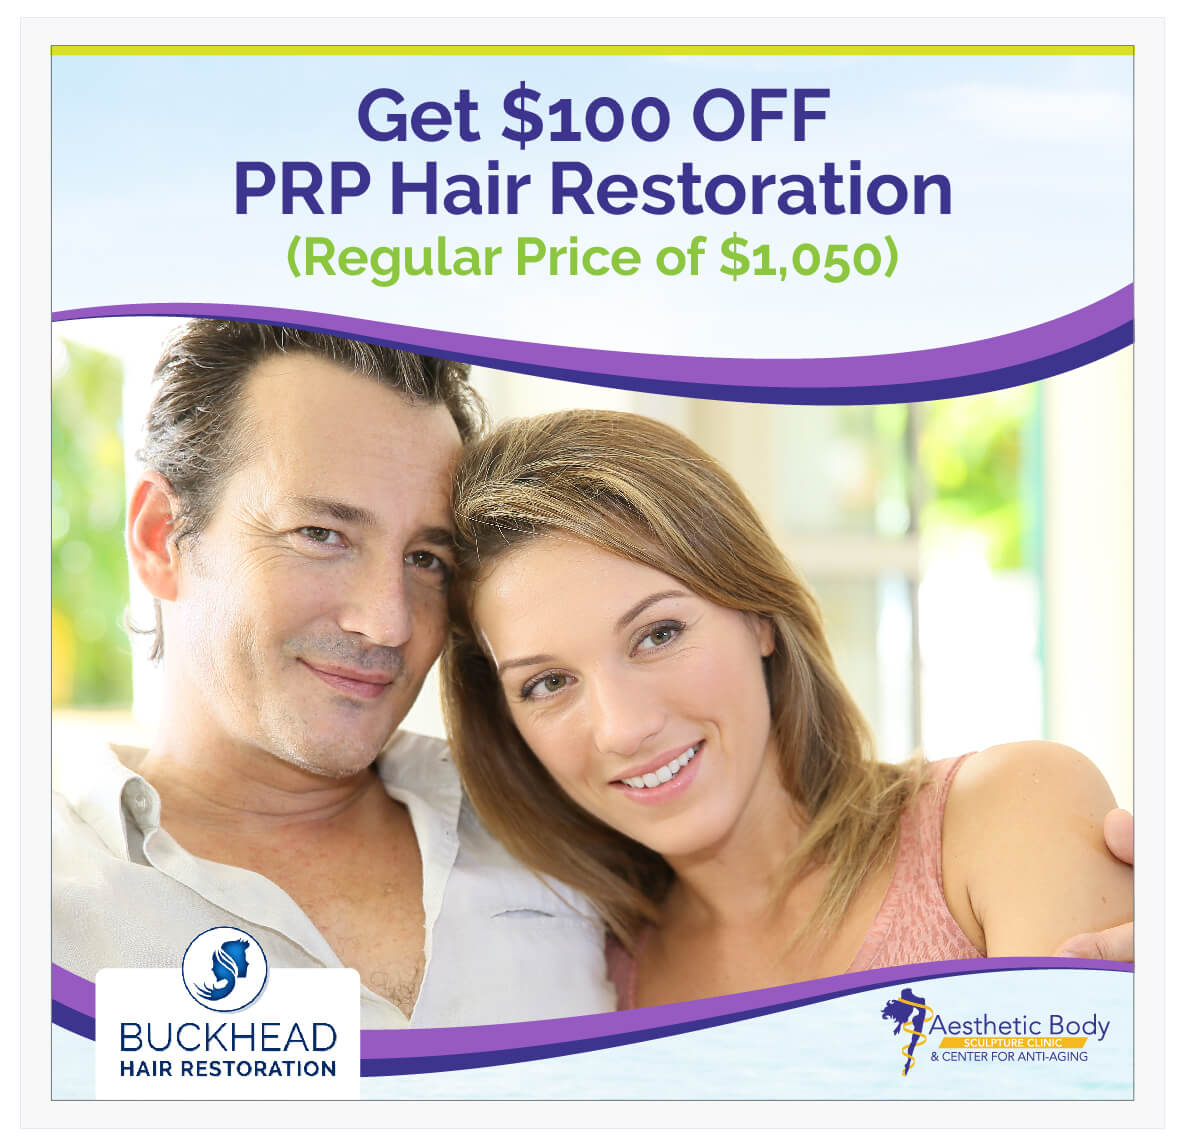 SlaterMD July 2018 and August 2018 Specials